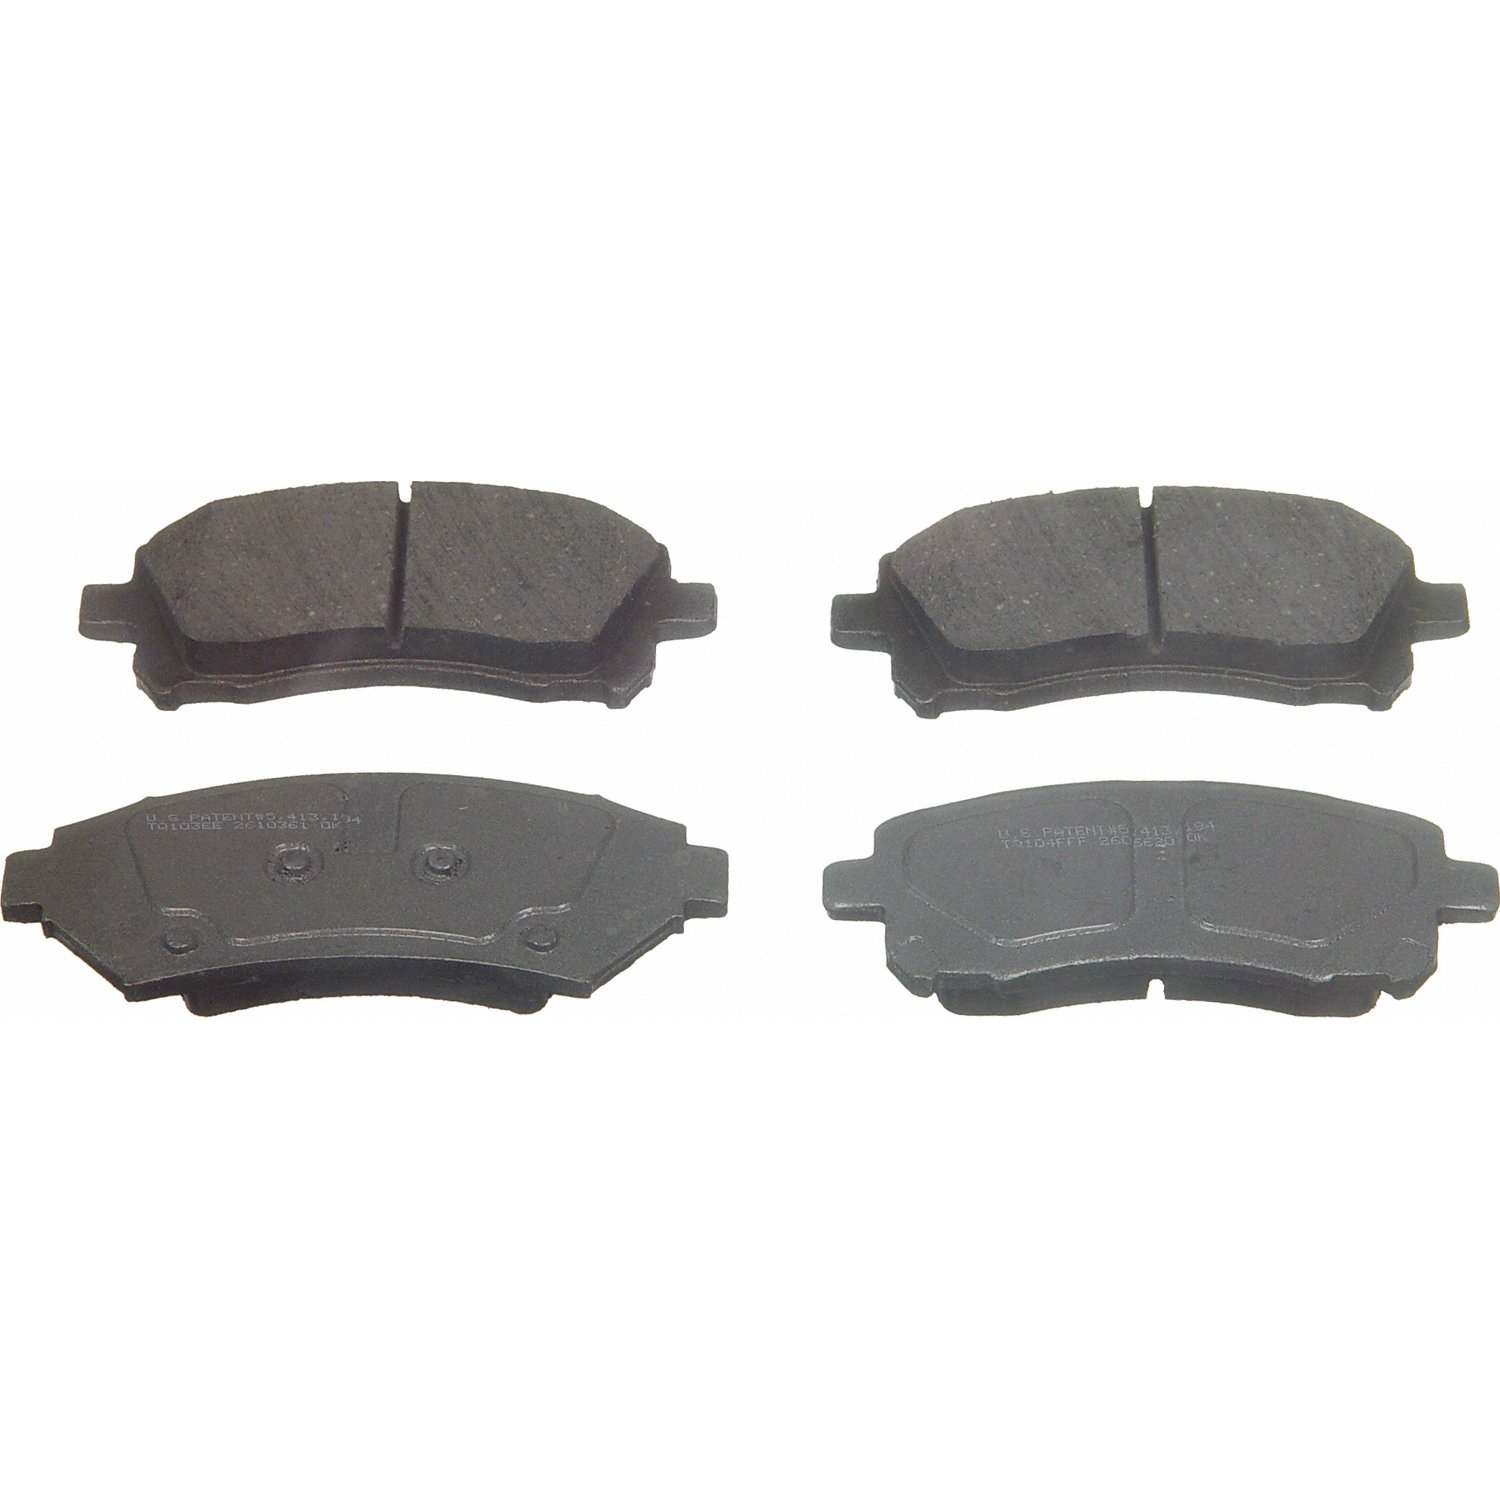 Wagner ThermoQuiet PD721 Ceramic Disc Pad Set Front